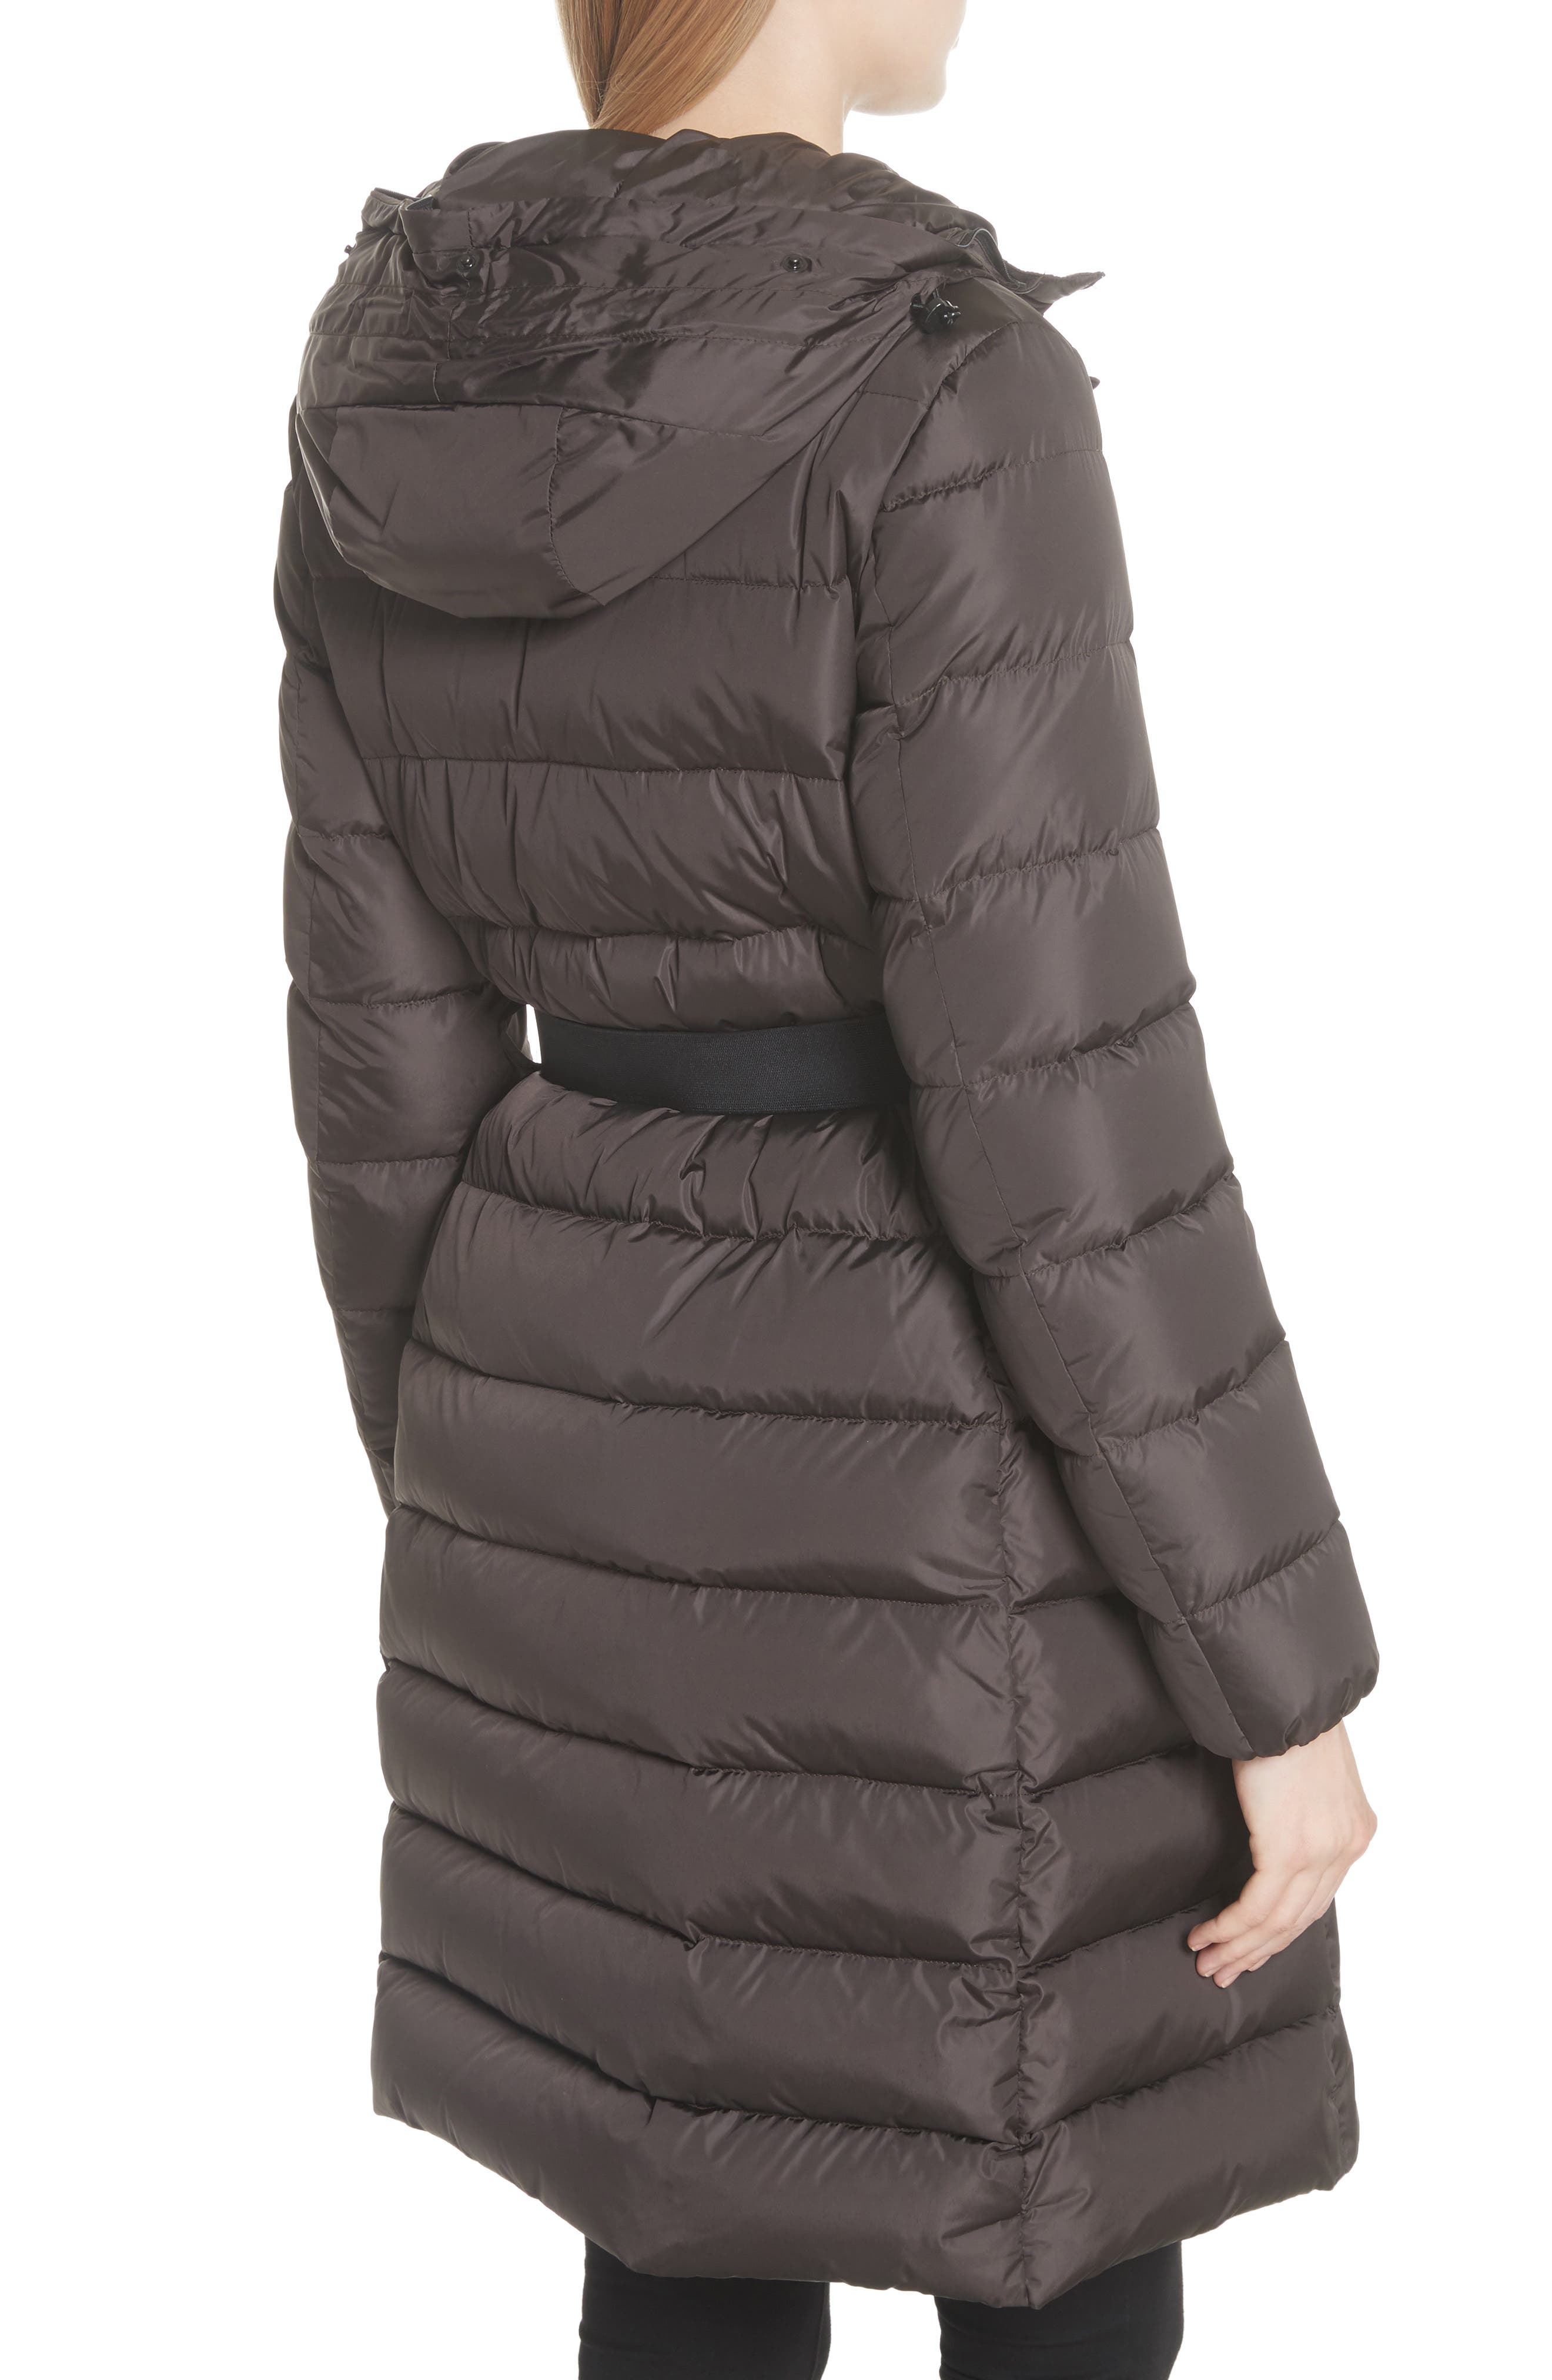 'Khloe' Water Resistant Nylon Down Puffer Parka with Removable Genuine Fox Fur Trim,                             Alternate thumbnail 2, color,                             Brown